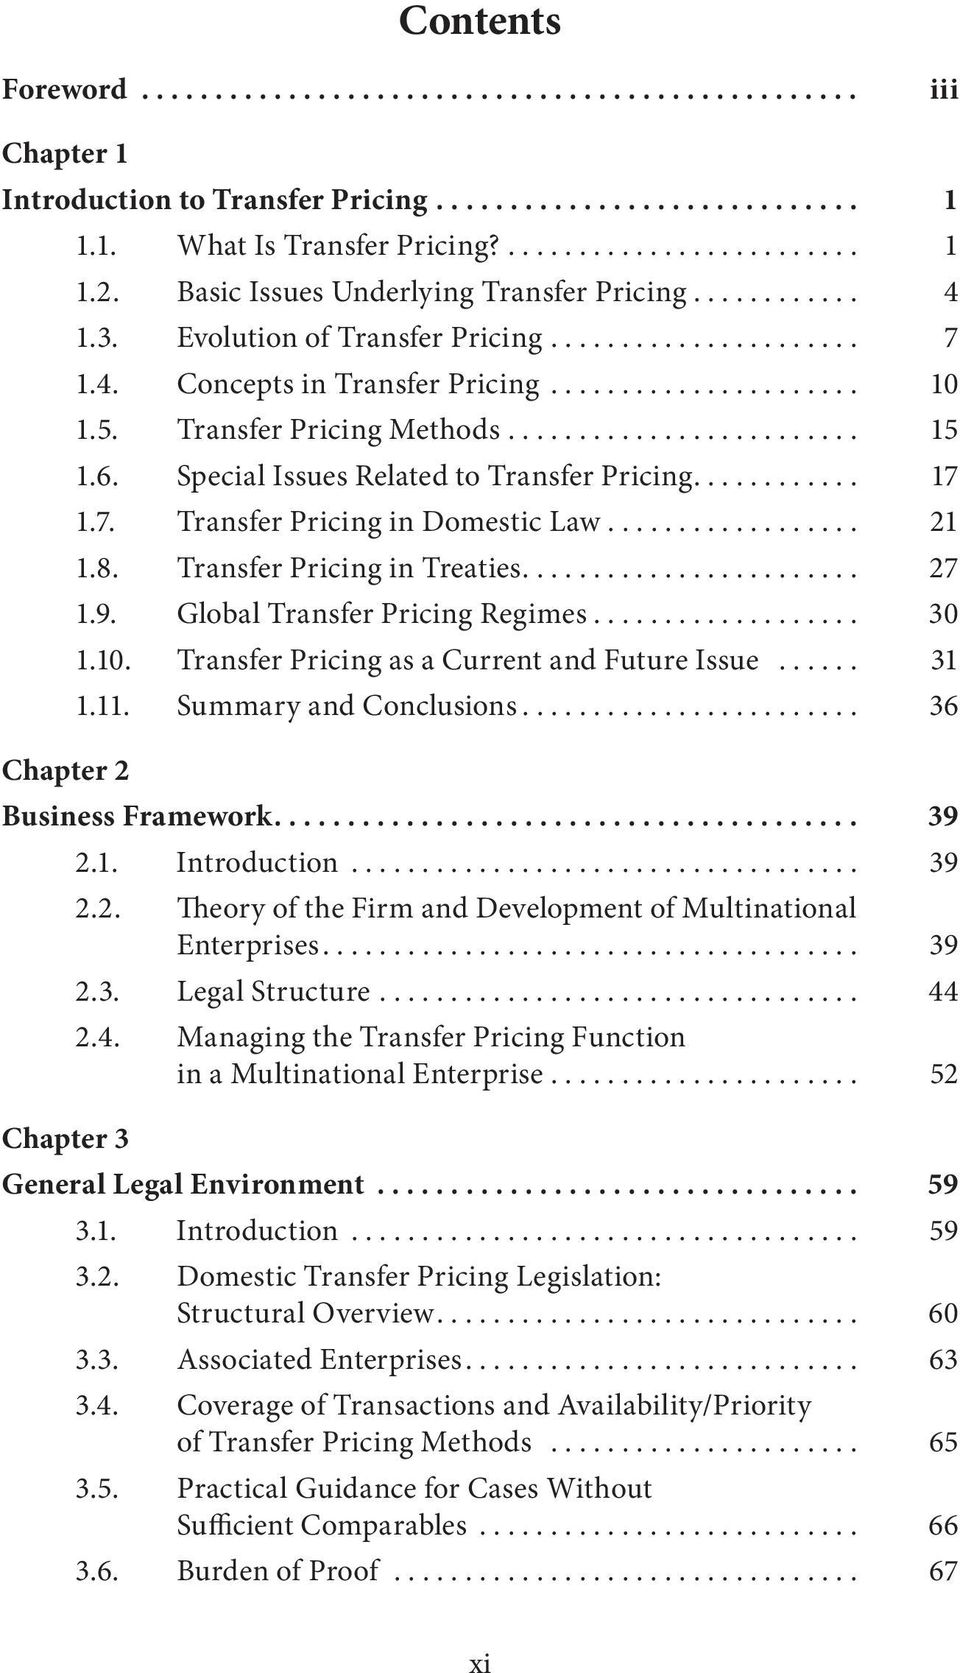 Transfer Pricing in Treaties.... 27 1.9. Global Transfer Pricing Regimes... 30 1.10. Transfer Pricing as a Current and Future Issue... 31 1.11. Summary and Conclusions.